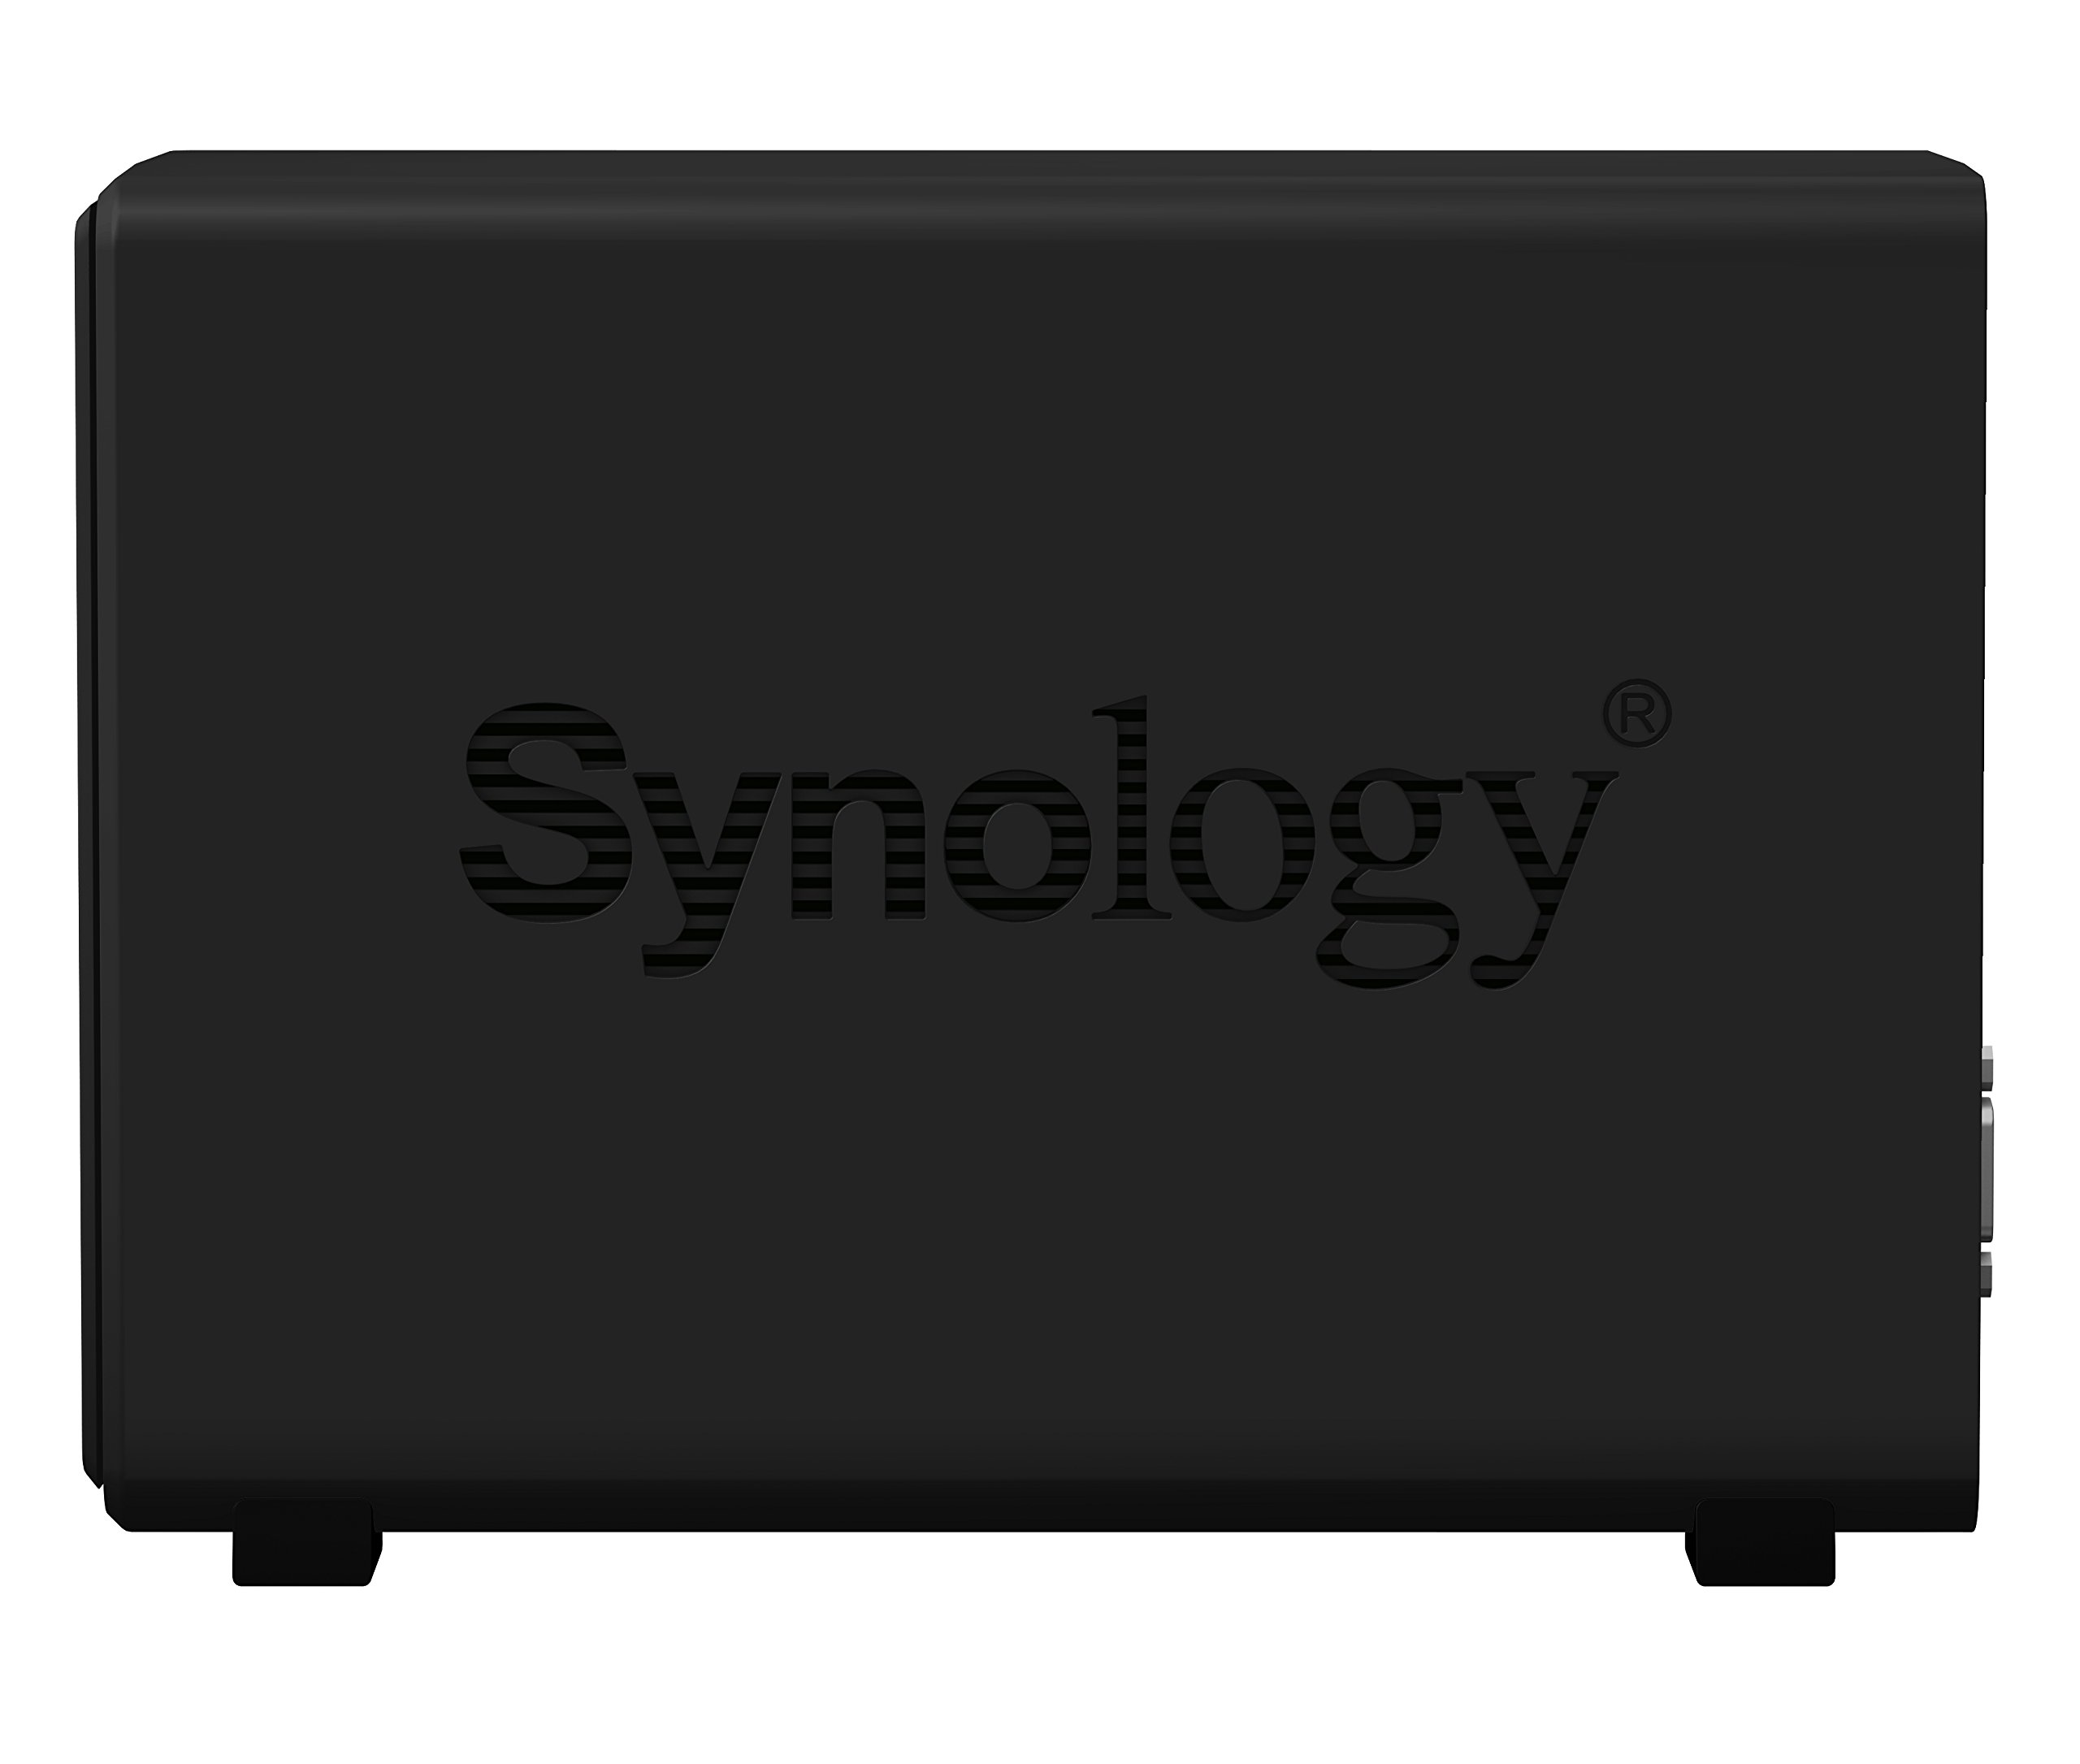 Synology 2 bay Network Video Recorder NVR1218 (Diskless) 6 Standalone surveillance solution with 1080p HDMI output Point of Sale (POS) system support combines business transaction records with surveillance recordings 4 free camera licenses included, supports up to 12 cameras